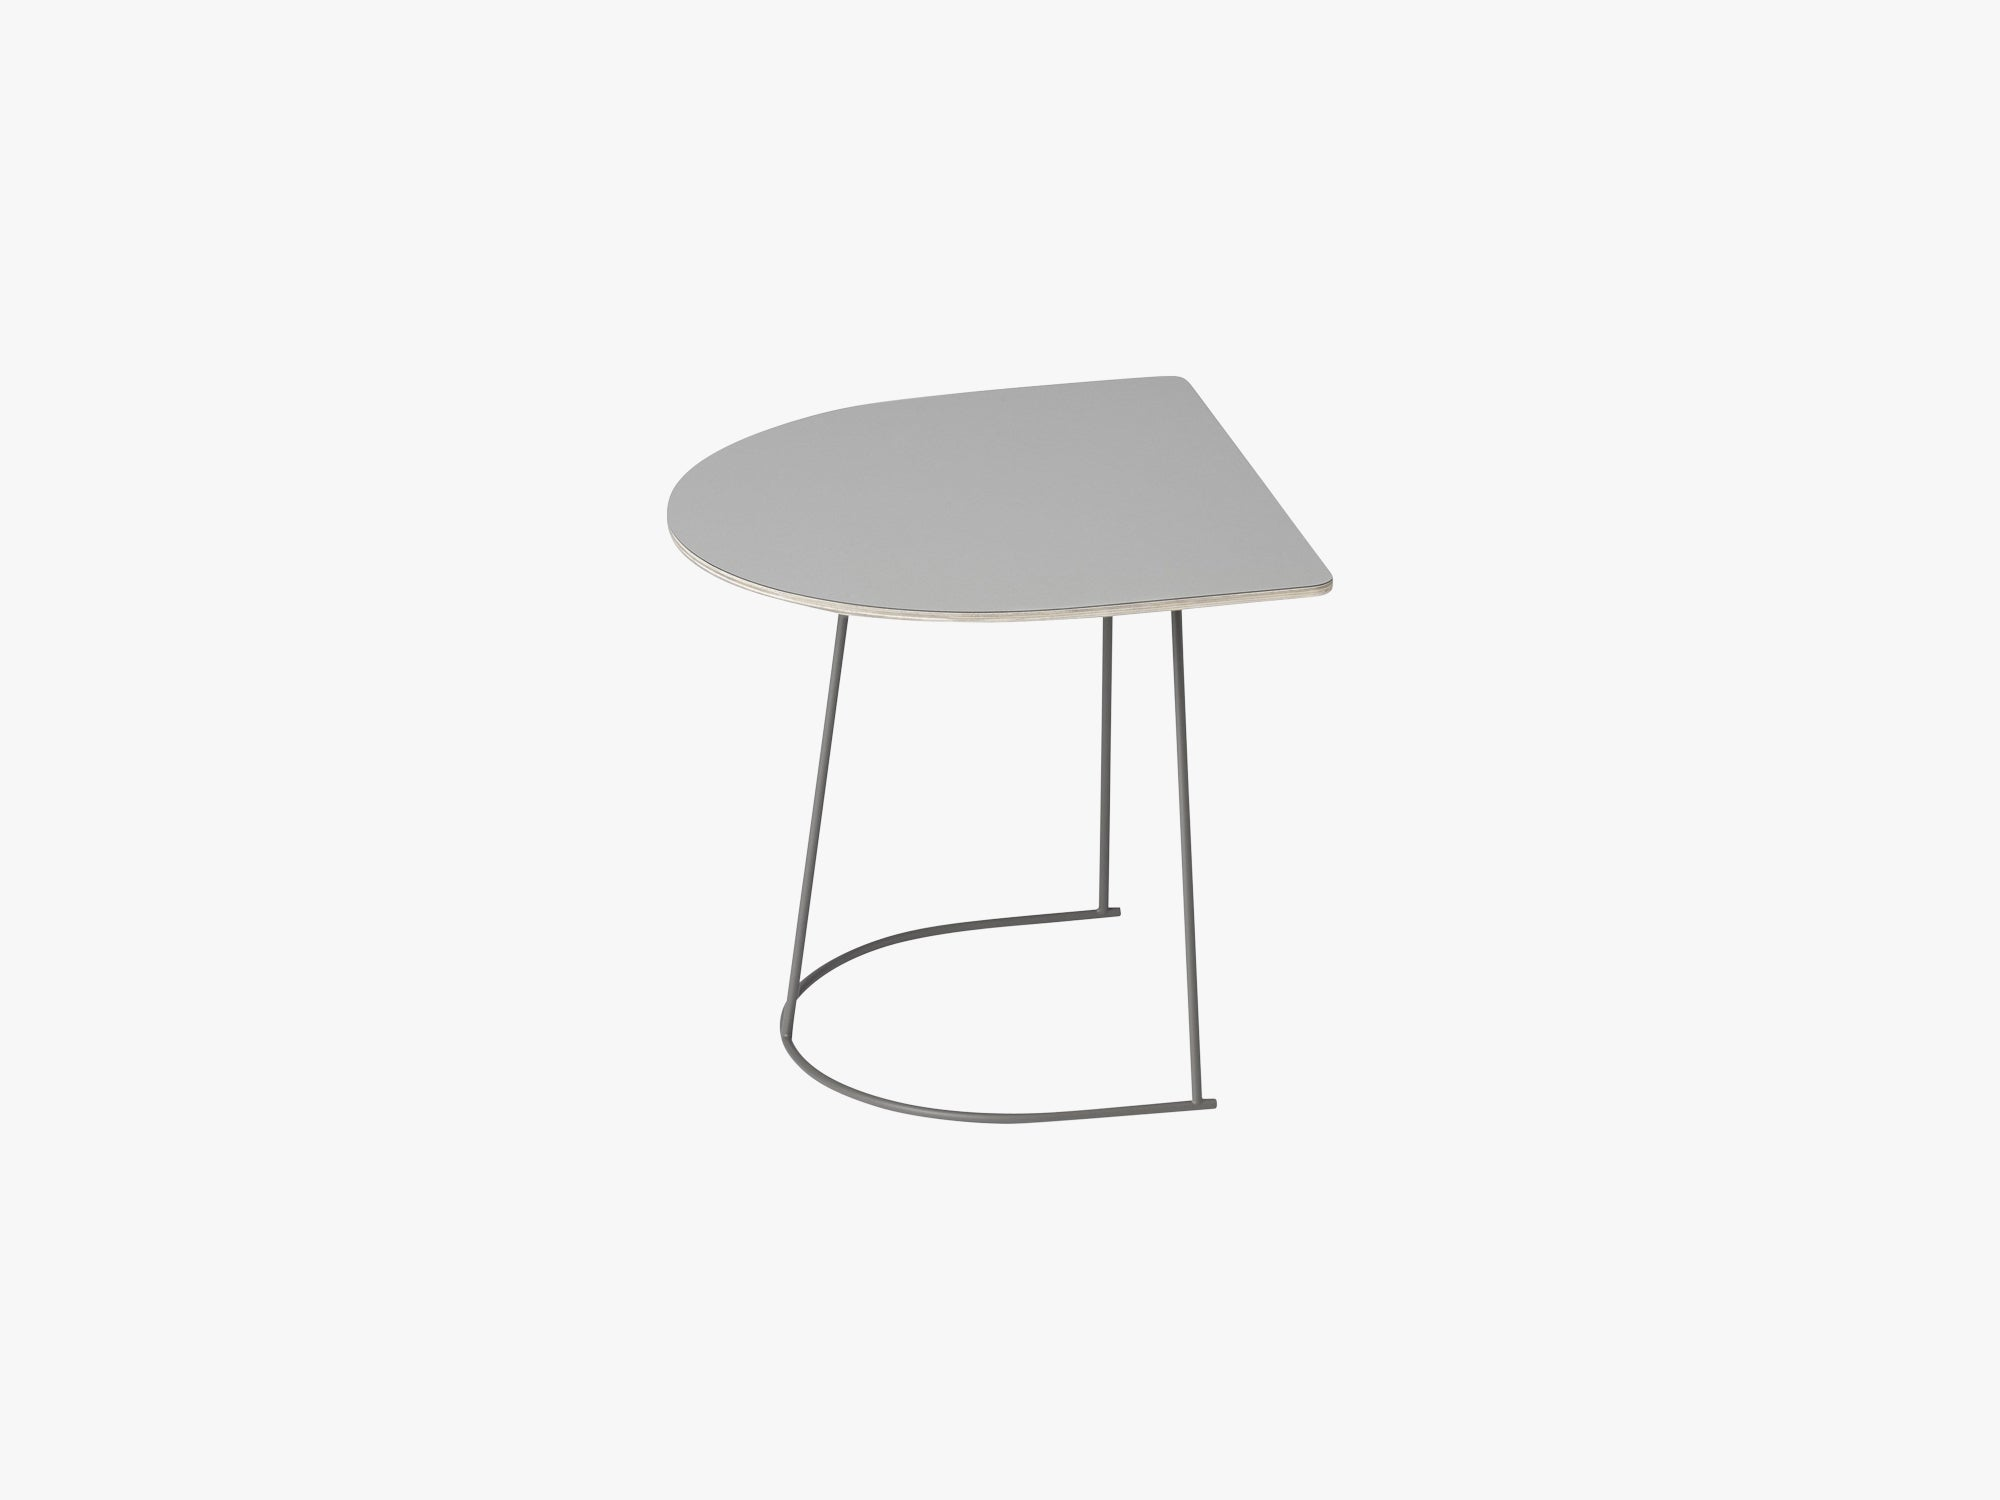 Airy Coffee Table - Half Size, Grey - Nanolaminate fra Muuto